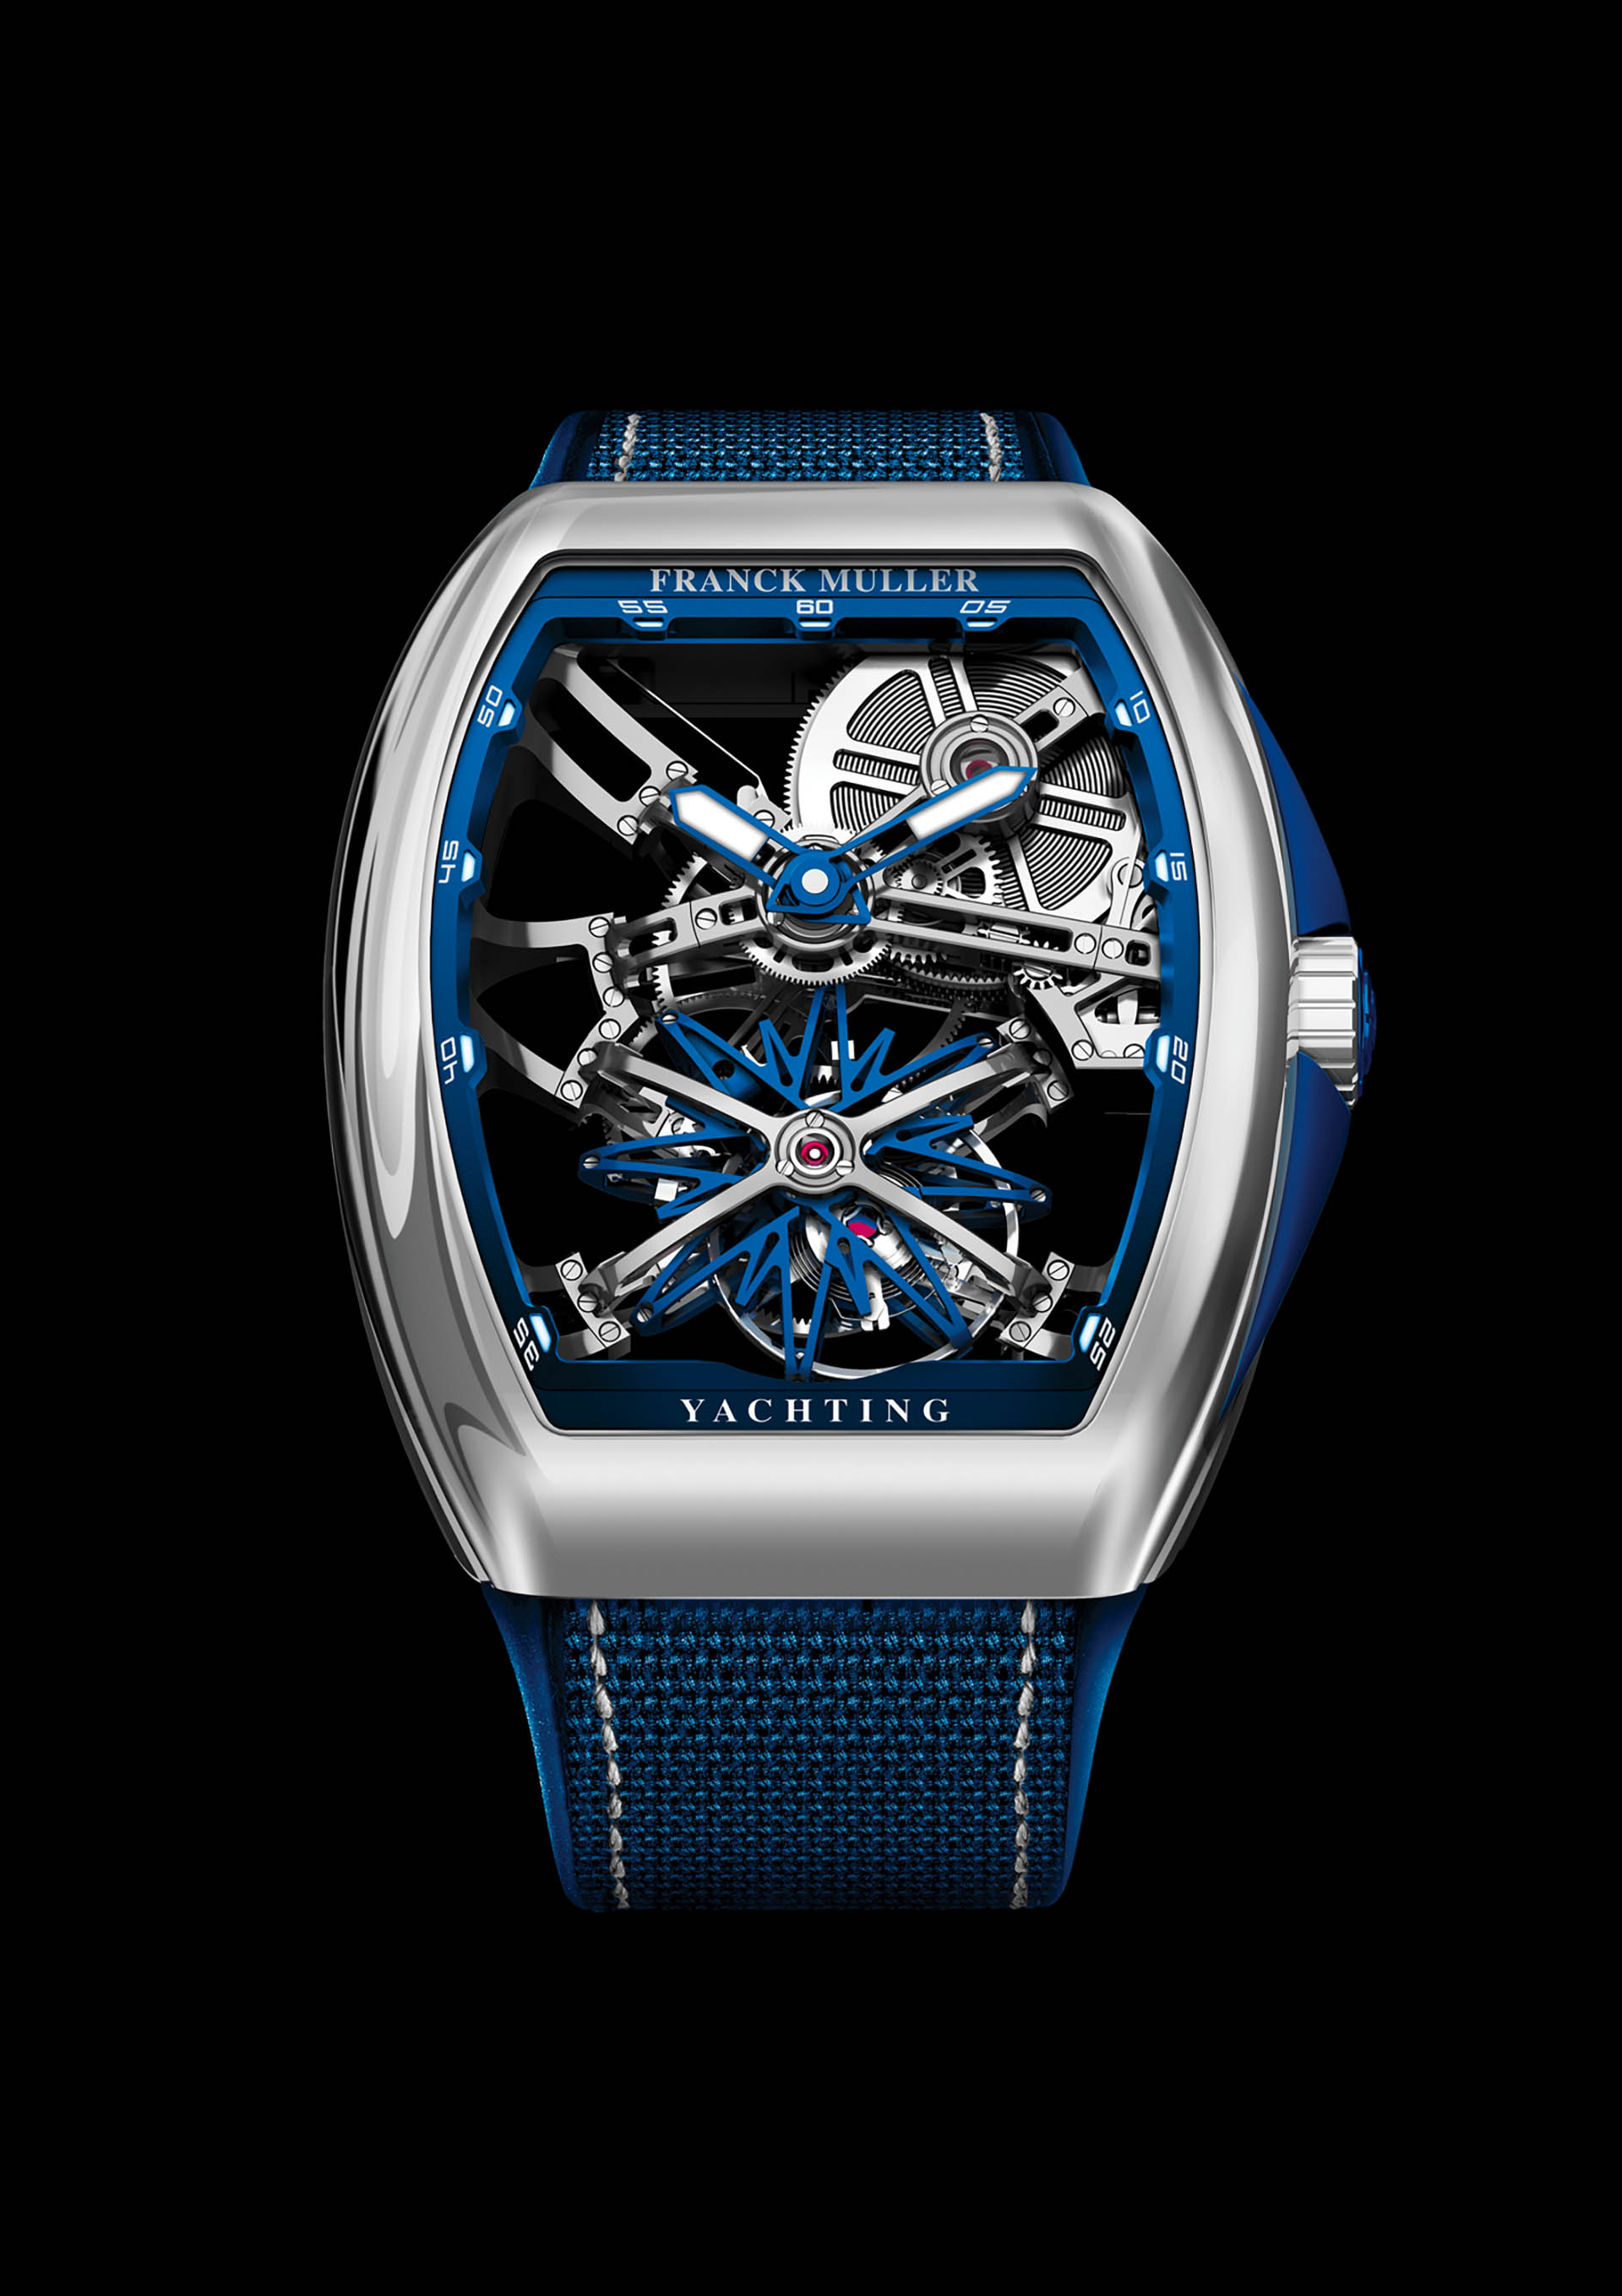 FRANCK MULLER VANGUARD GRAVITY YACHTING SKELETON